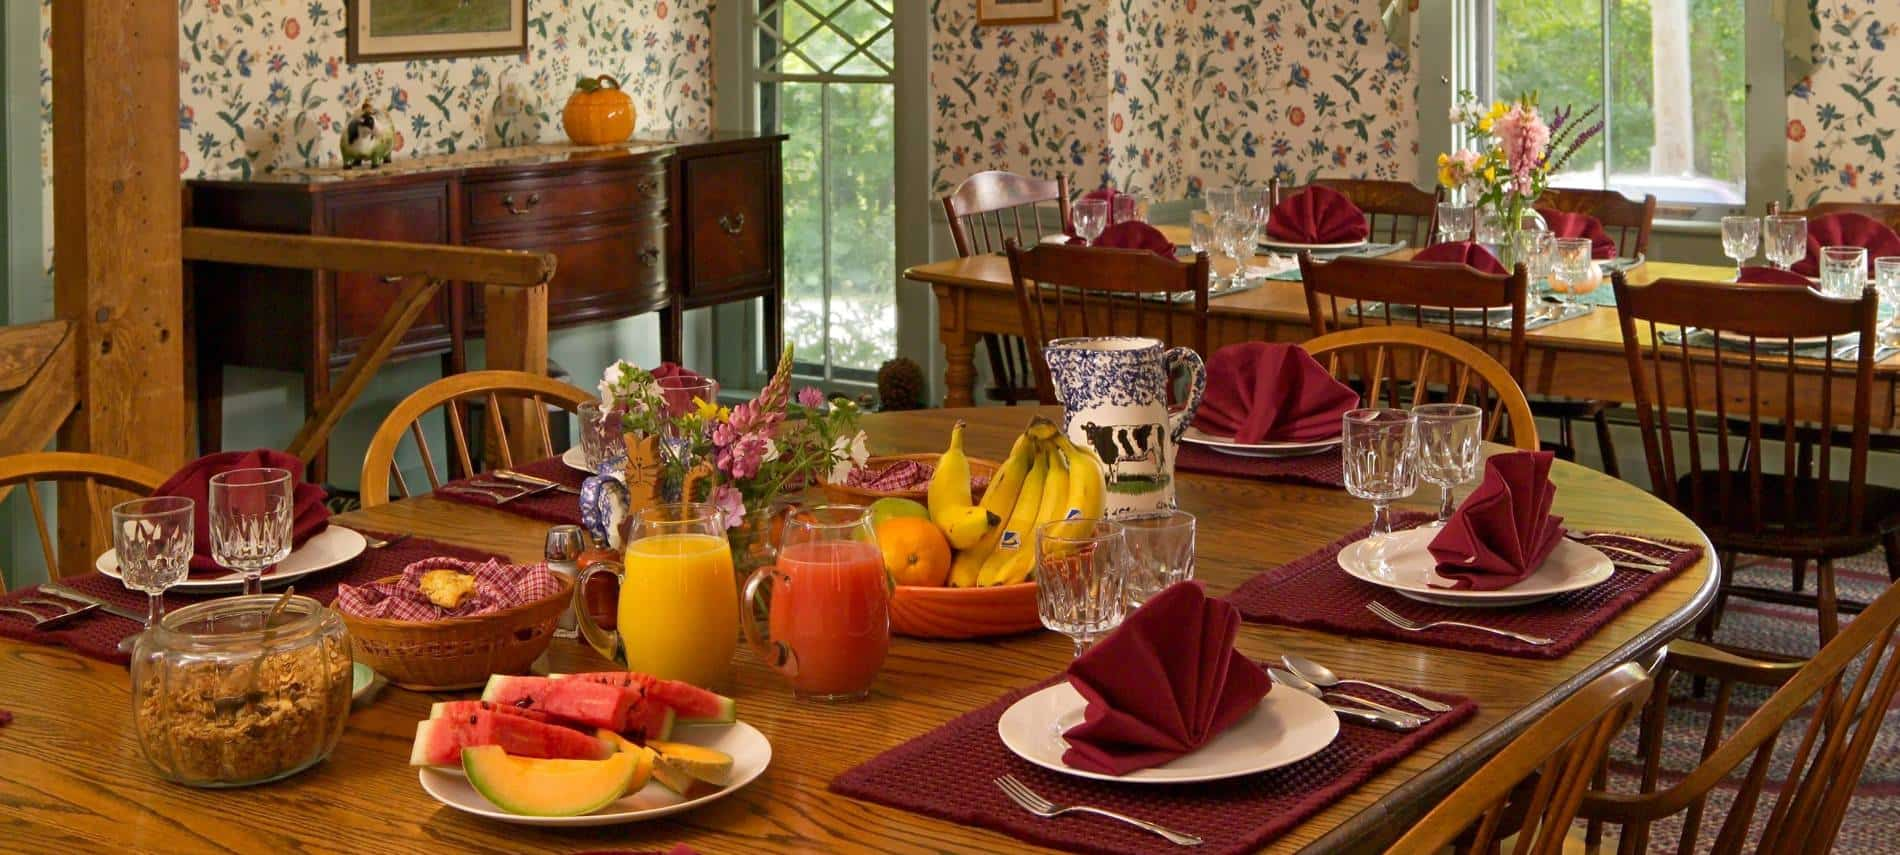 Cozy dining area with papered walls, windows, dining tables and chairs set for breakfast with granola, fruit, juice and flowers